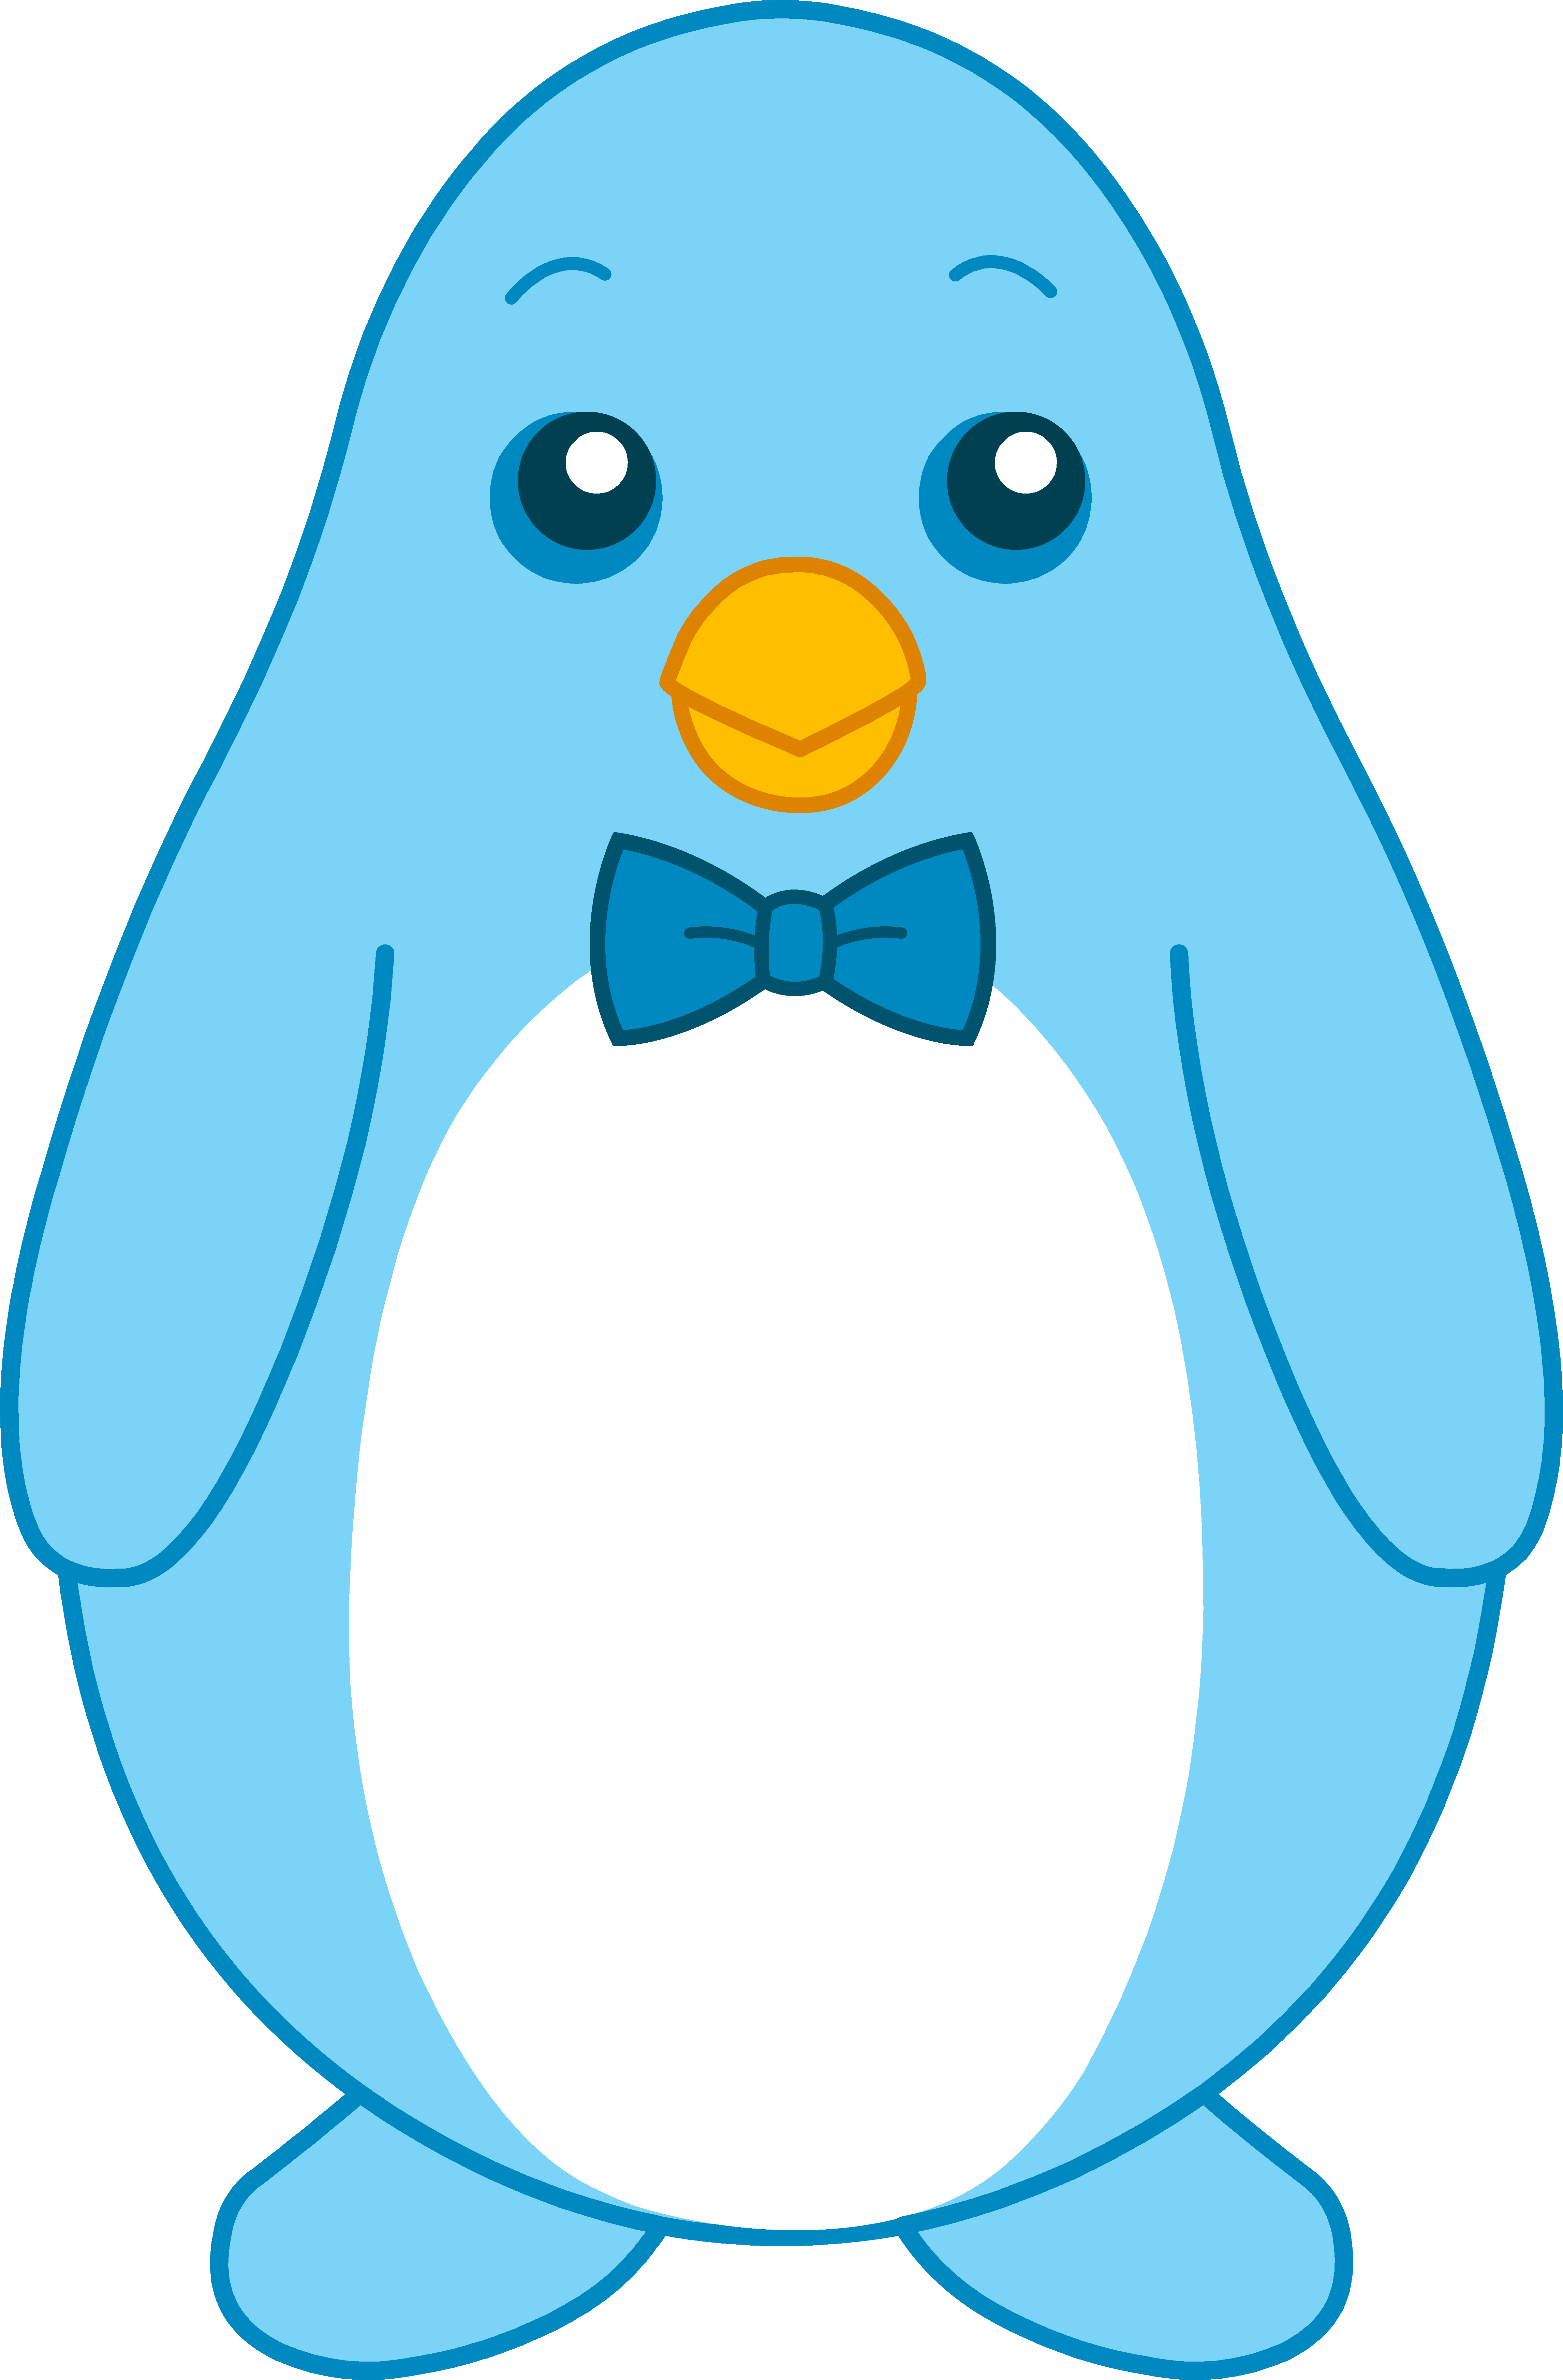 jpg freeuse stock Drawing penguin cute. Little blue with bow